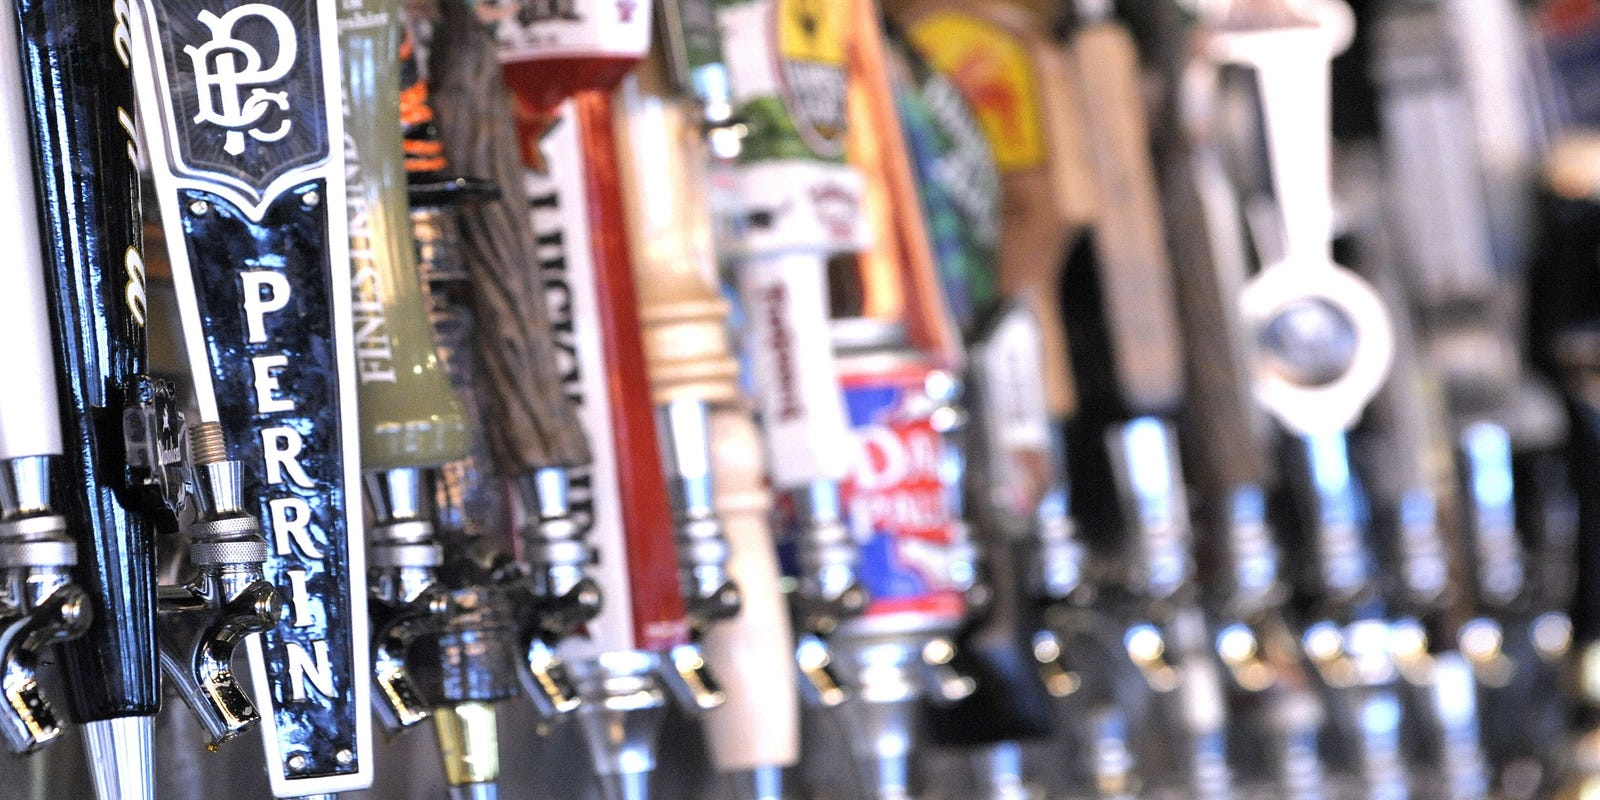 Beer industry has a $6.6B impact on Michigan's economy, study finds